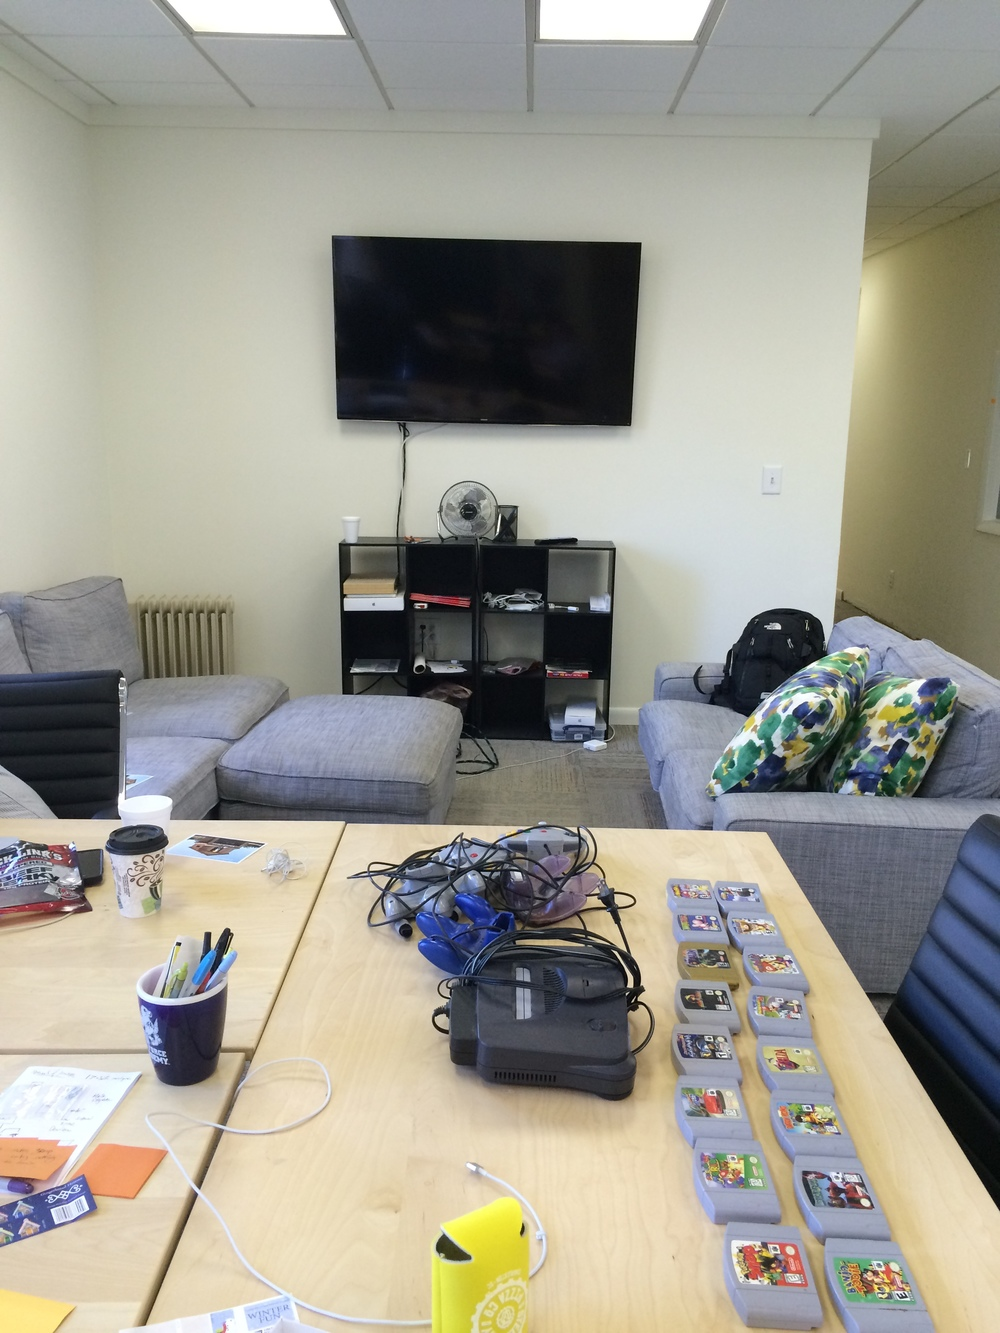 BrainPower Software Office, December 2014